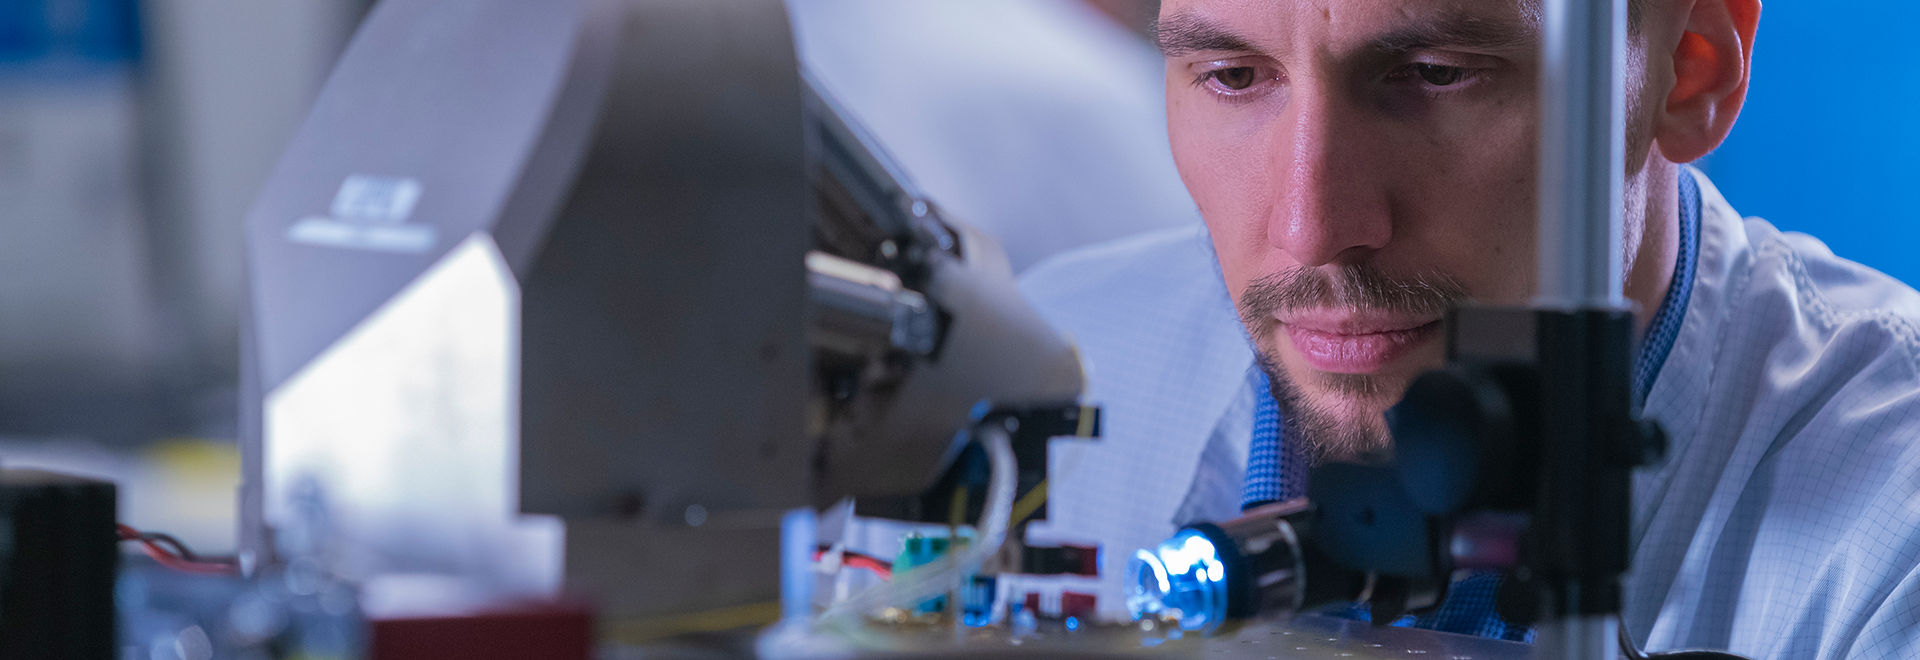 Photonics development and industrialization services